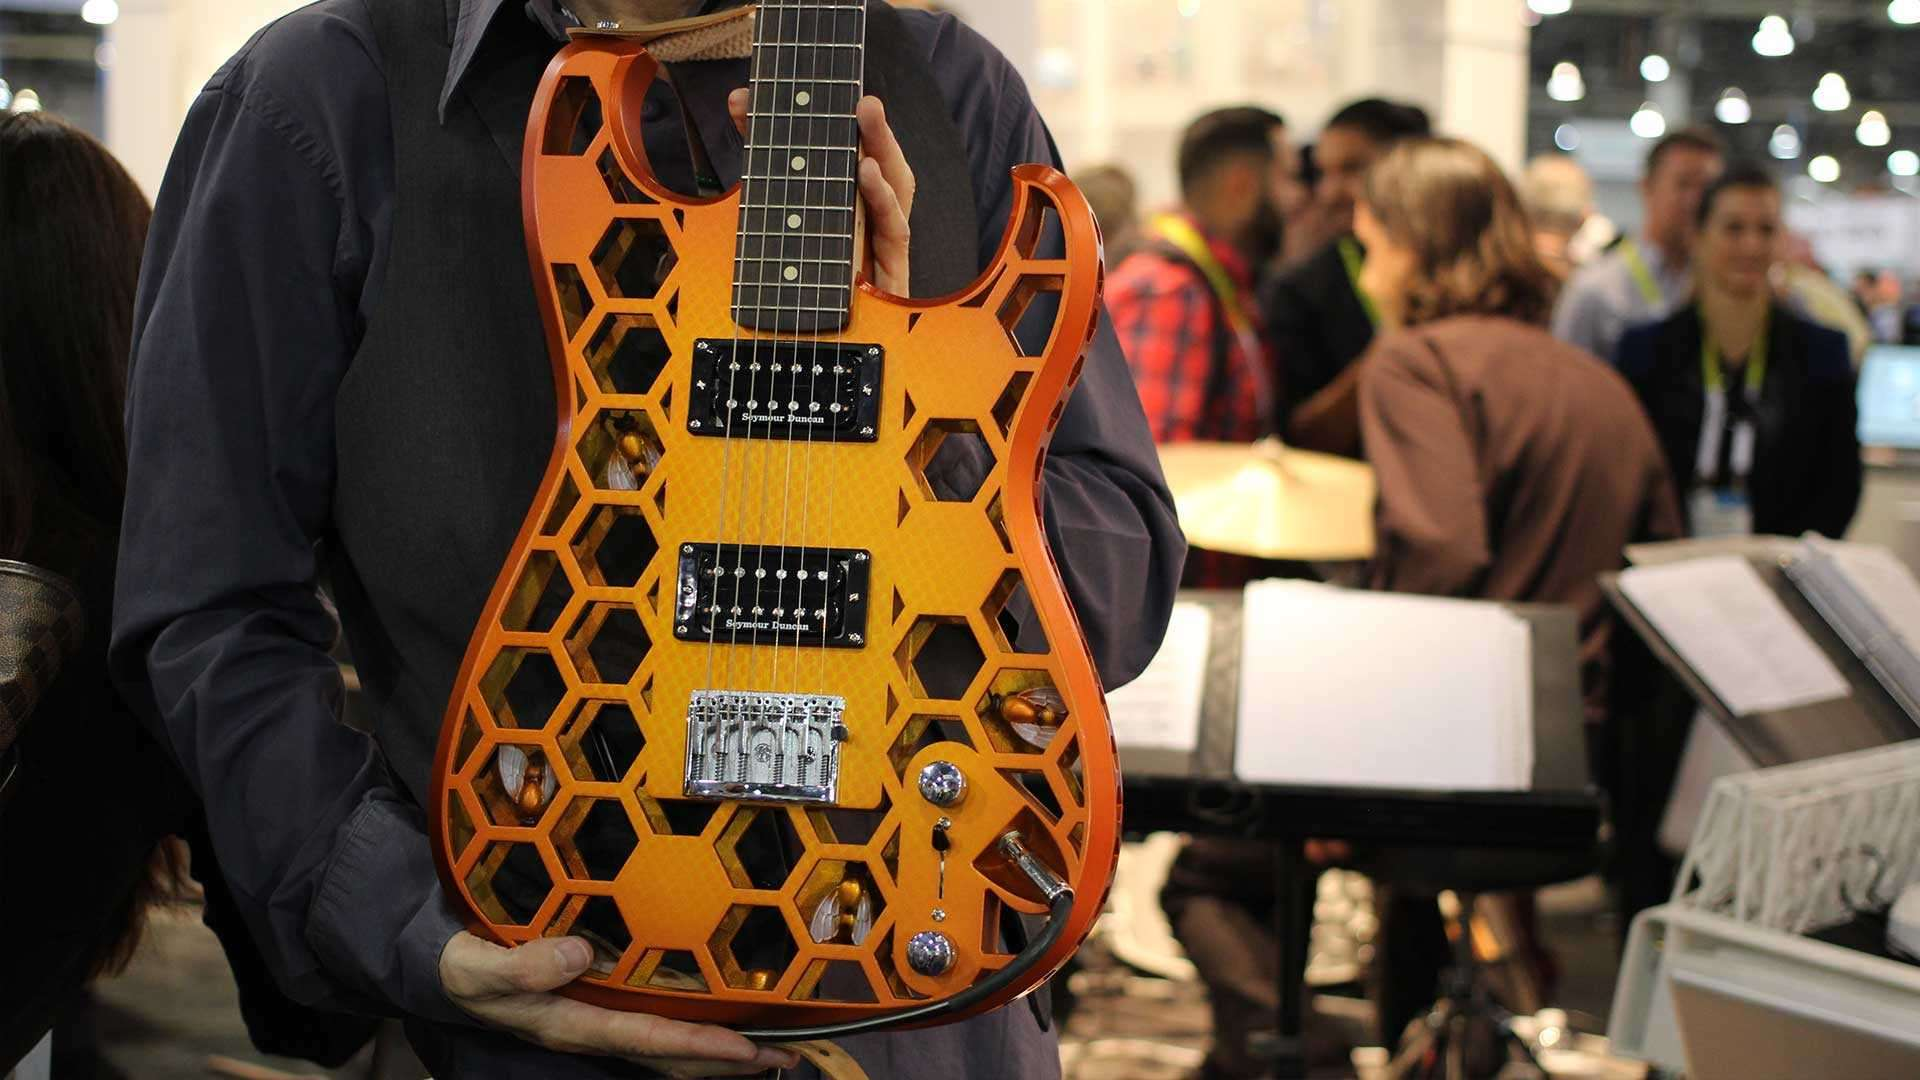 3D printing enables more complex products such as this printed bass